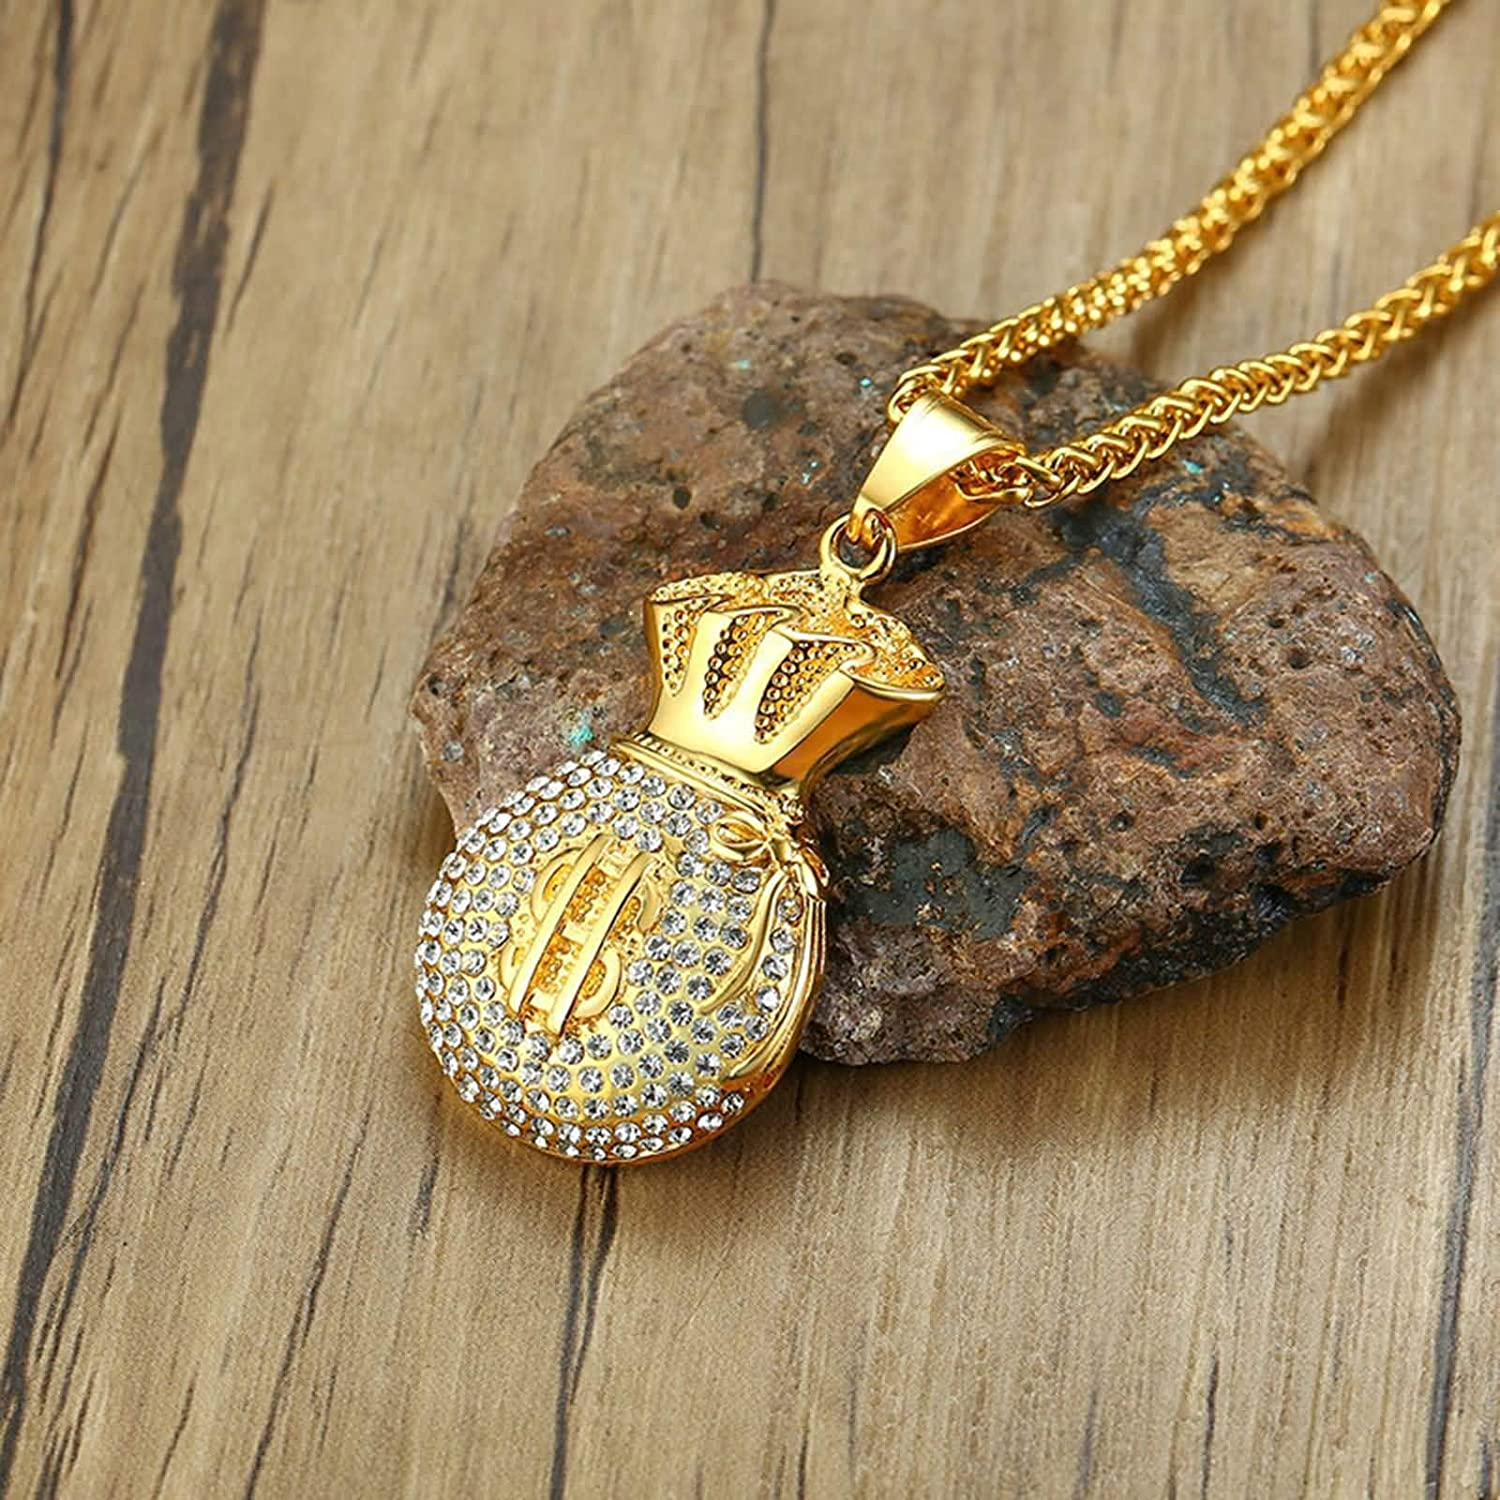 Gnzoe Mens Stainless Steel Dollar Sign Money Bag Pendant Necklaces Gold